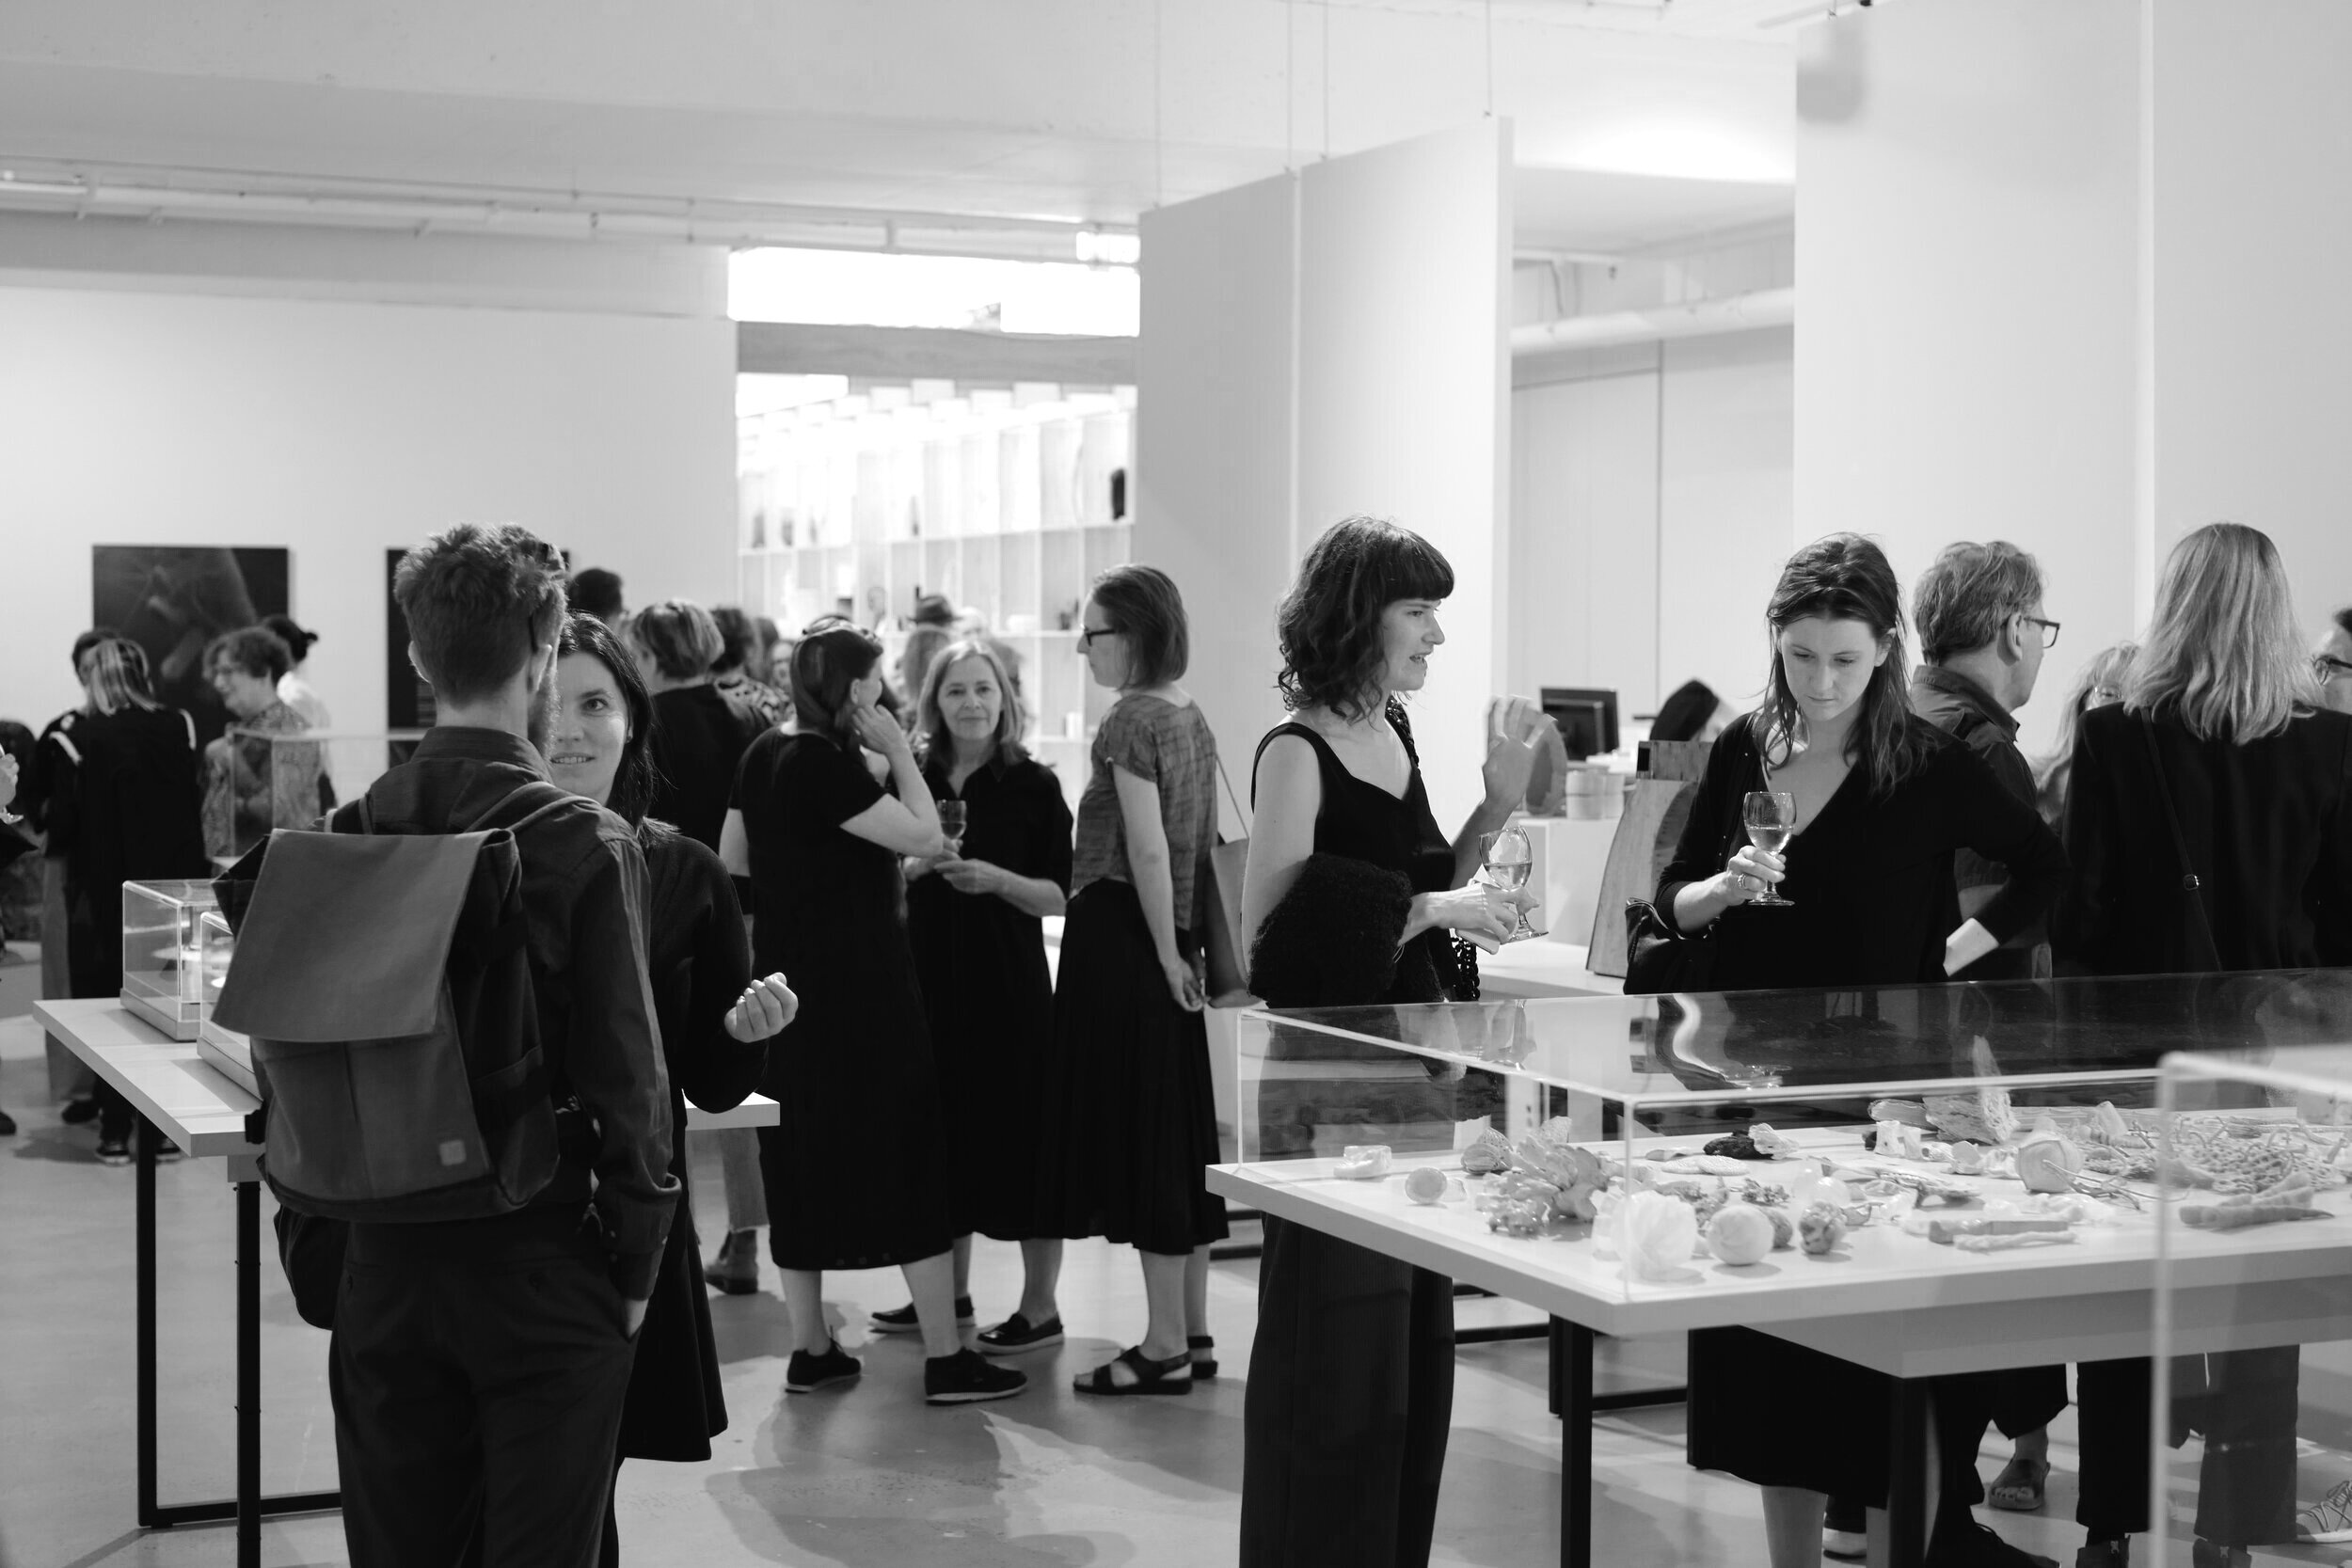 Craft Victoria_Catherine Truman_No surface holds_2019_Opening event_Photography Thomas Lentini_L1080902.jpg